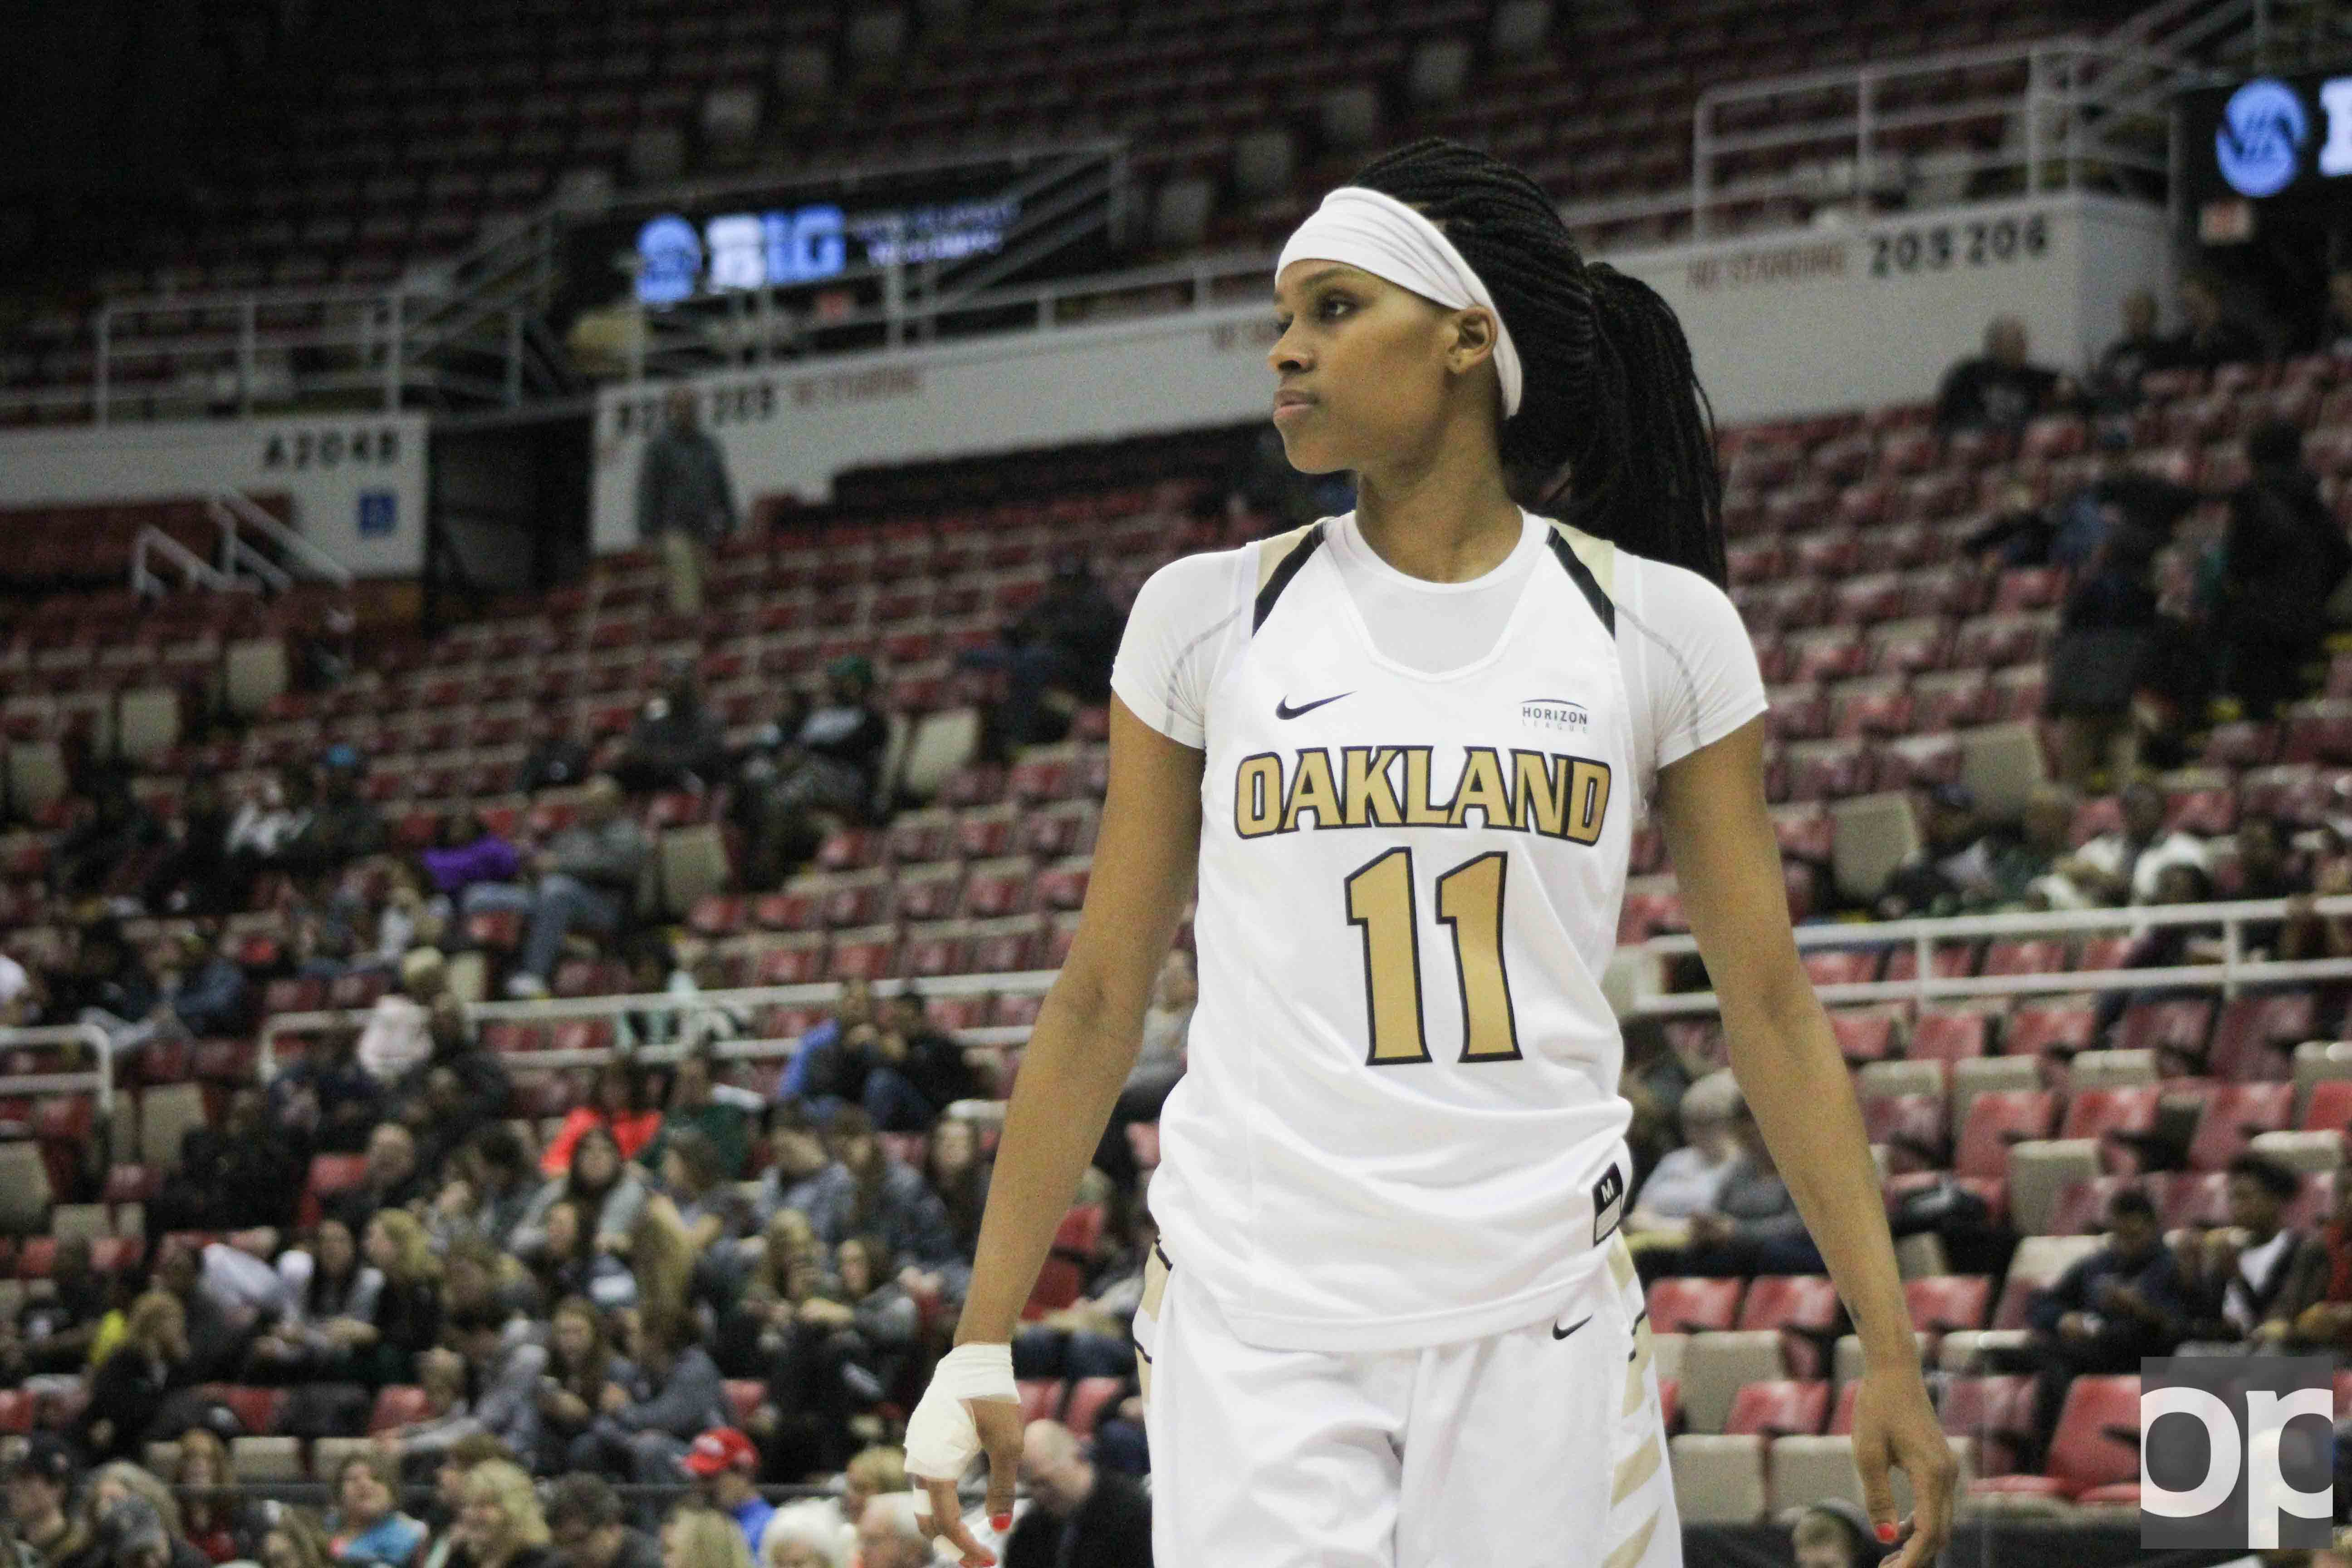 Despite a broken hand, Hannah Little played in the Motor City Madness quarterfinals for the Golden Grizzlies.